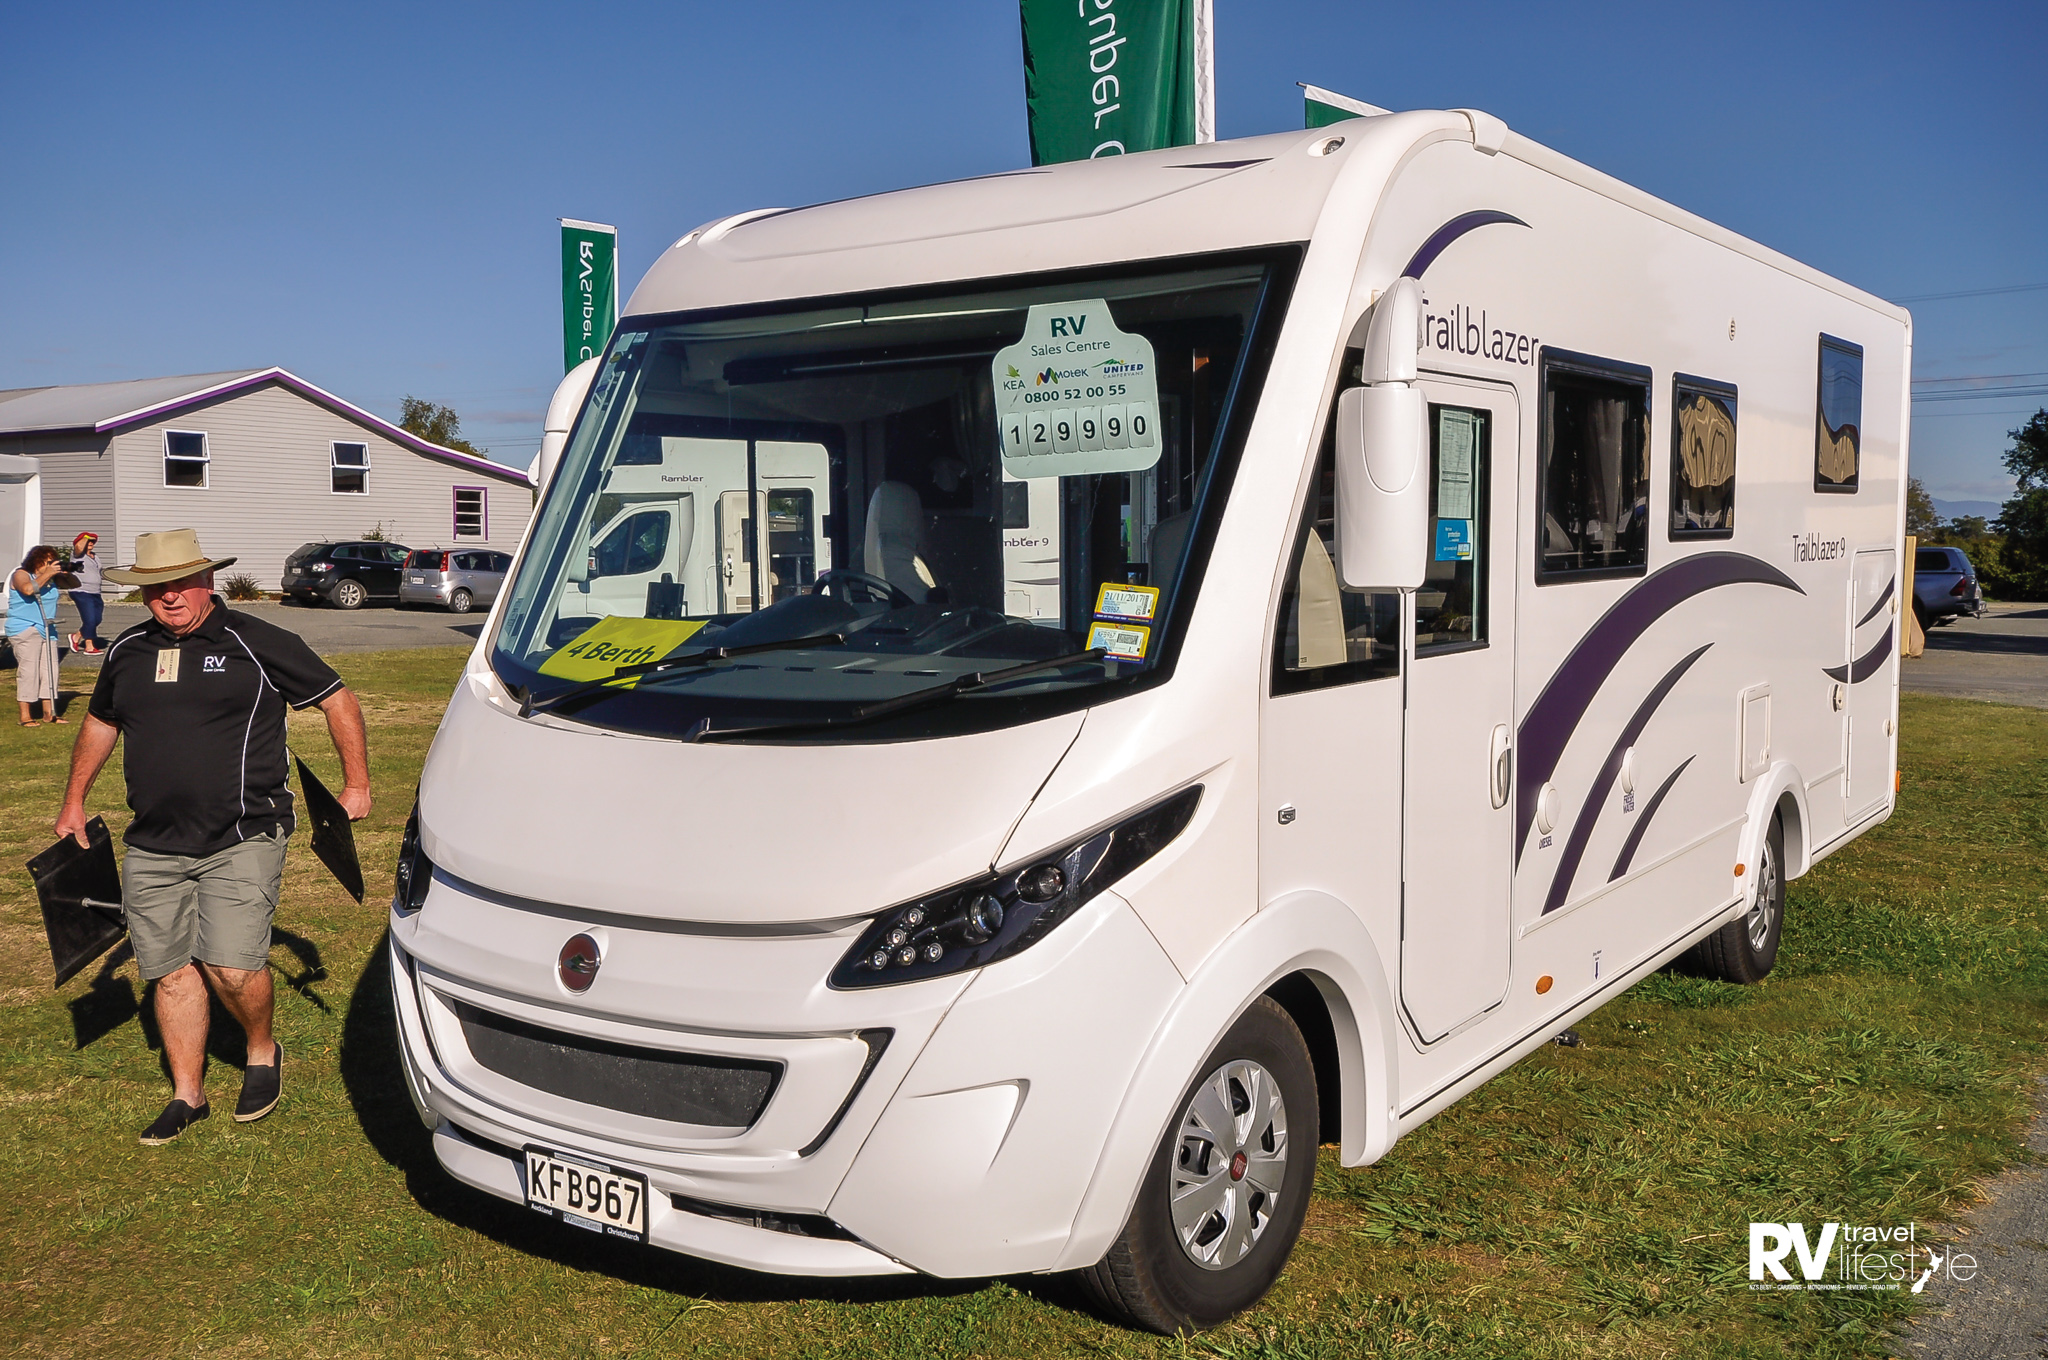 Steve Lane from the RV Supercentre in Auckland came down to work the weekend – this is a new model A-class motorhome from them, the Trailblazer